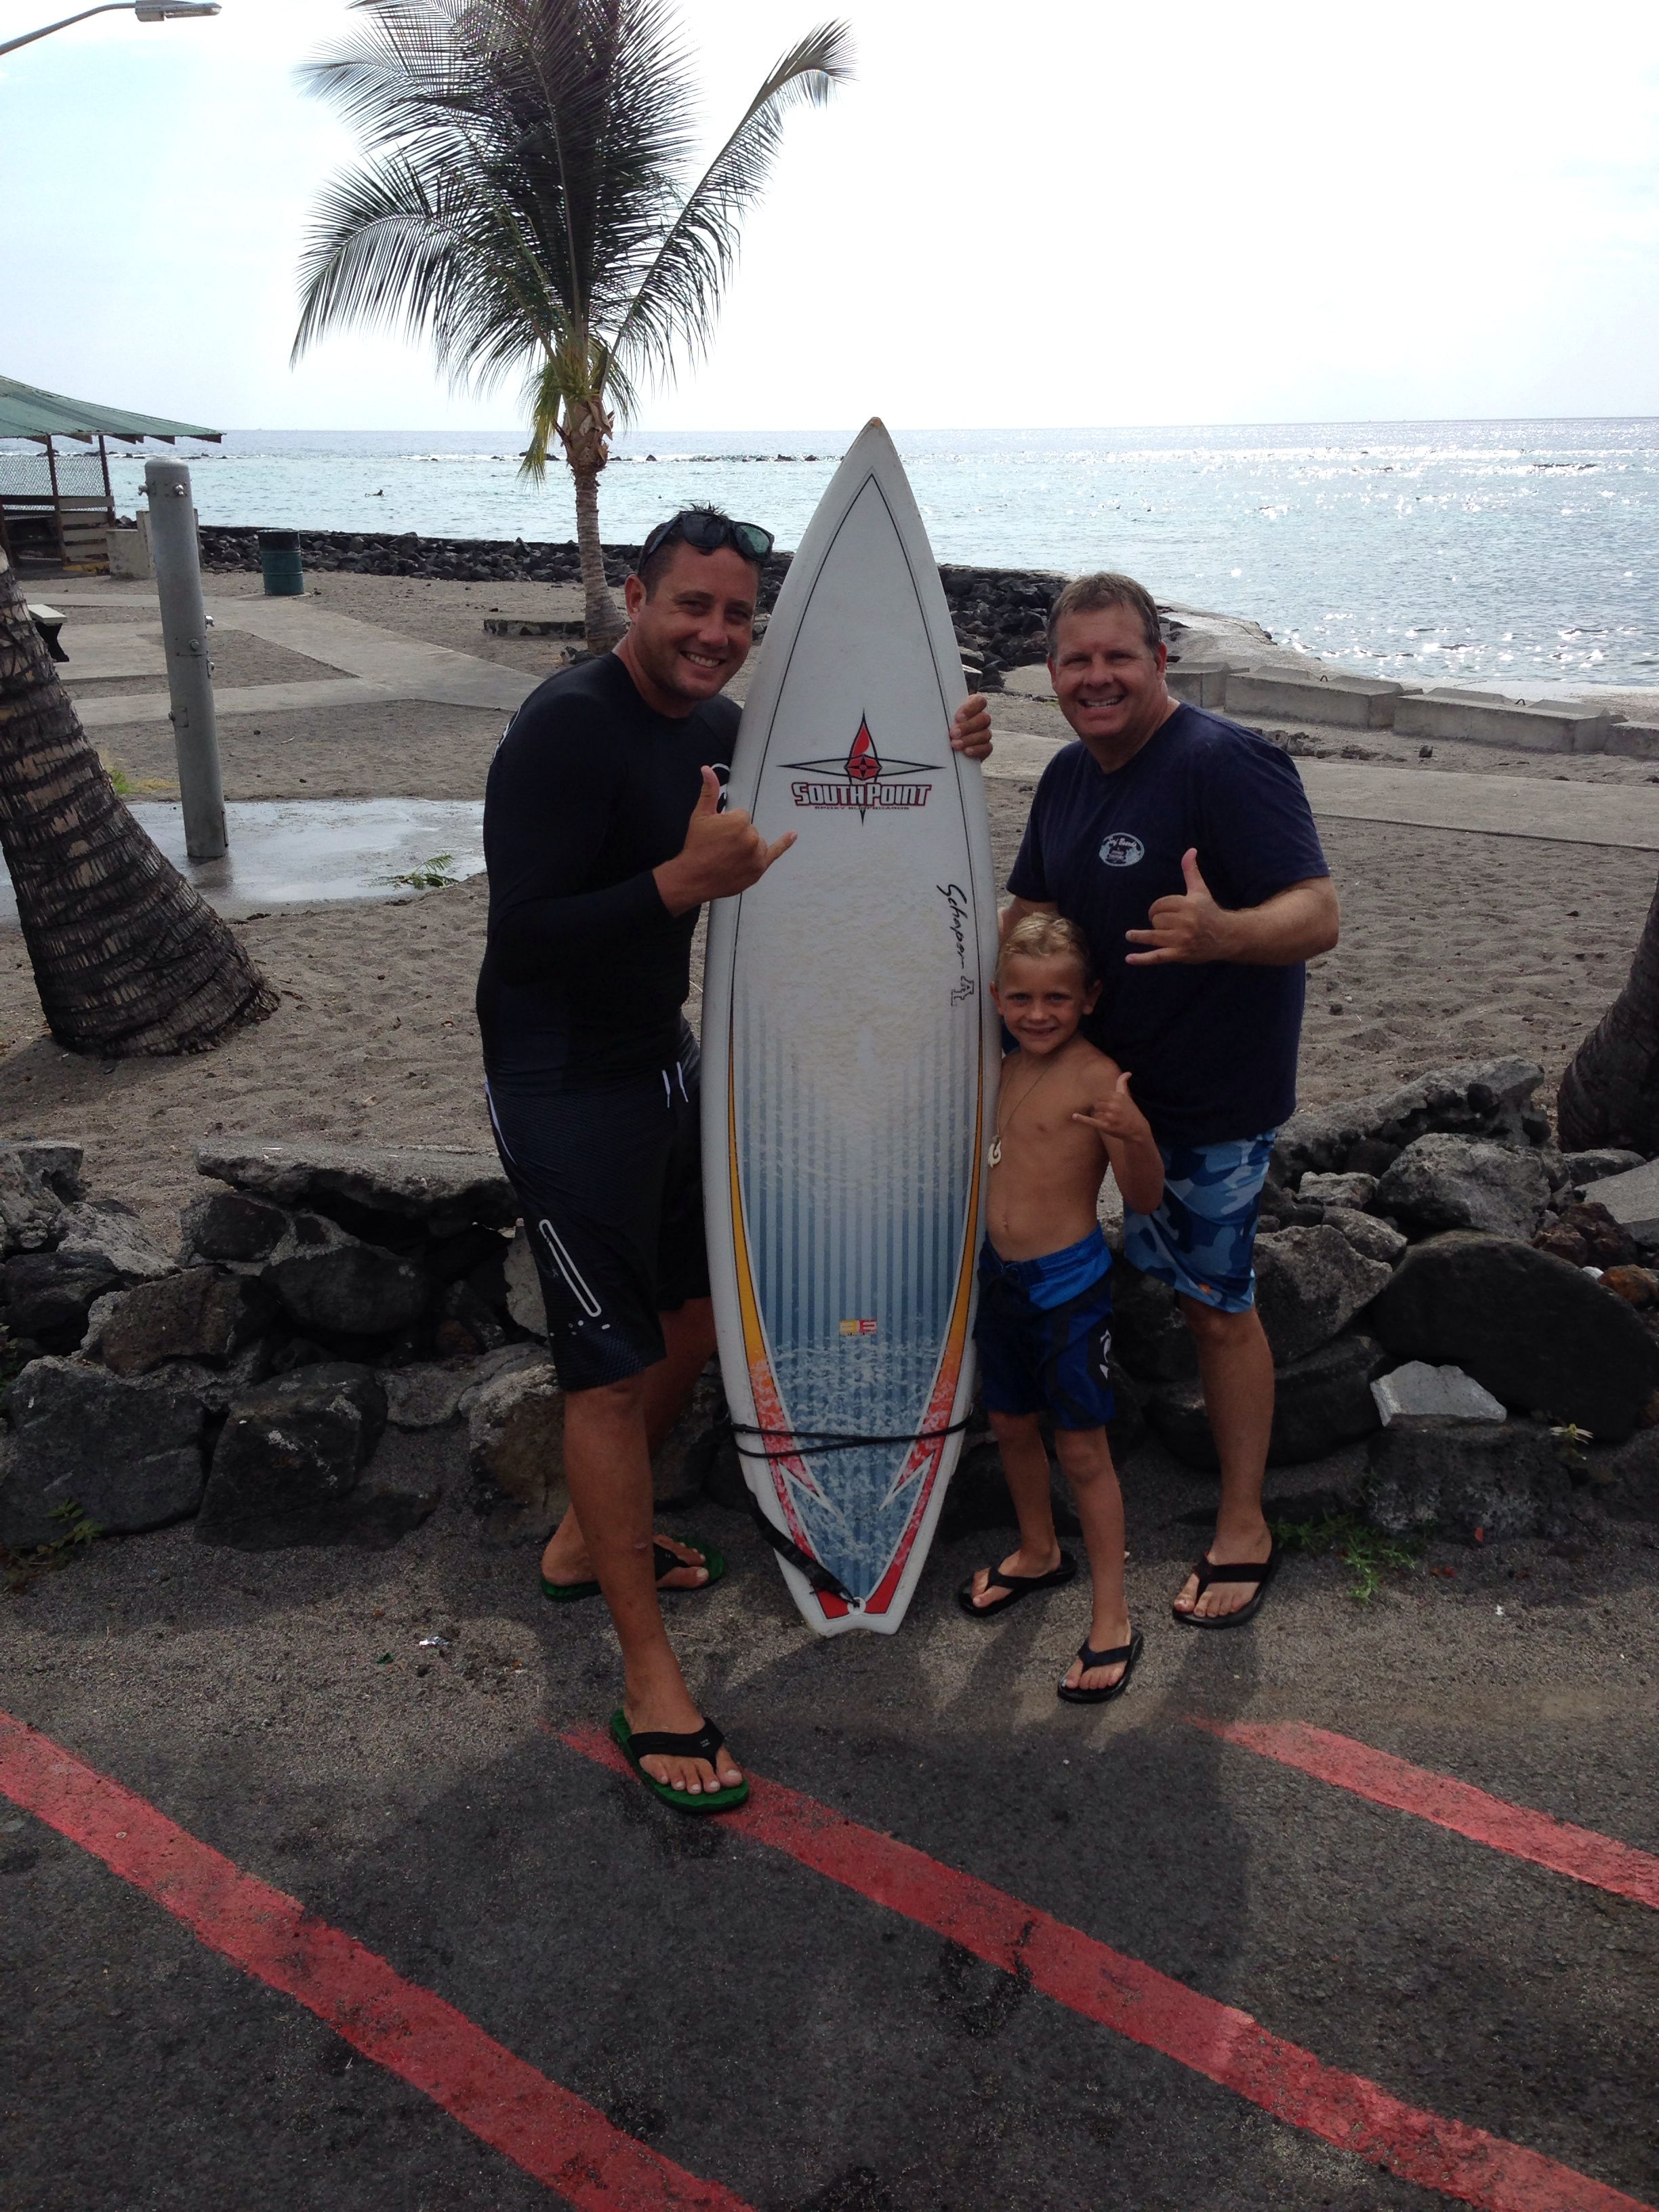 Kona surf company surf lessons in Kona! Learn from experienced local surfers. We gurantee u stand up! Call 808-217-5329 for reservations....